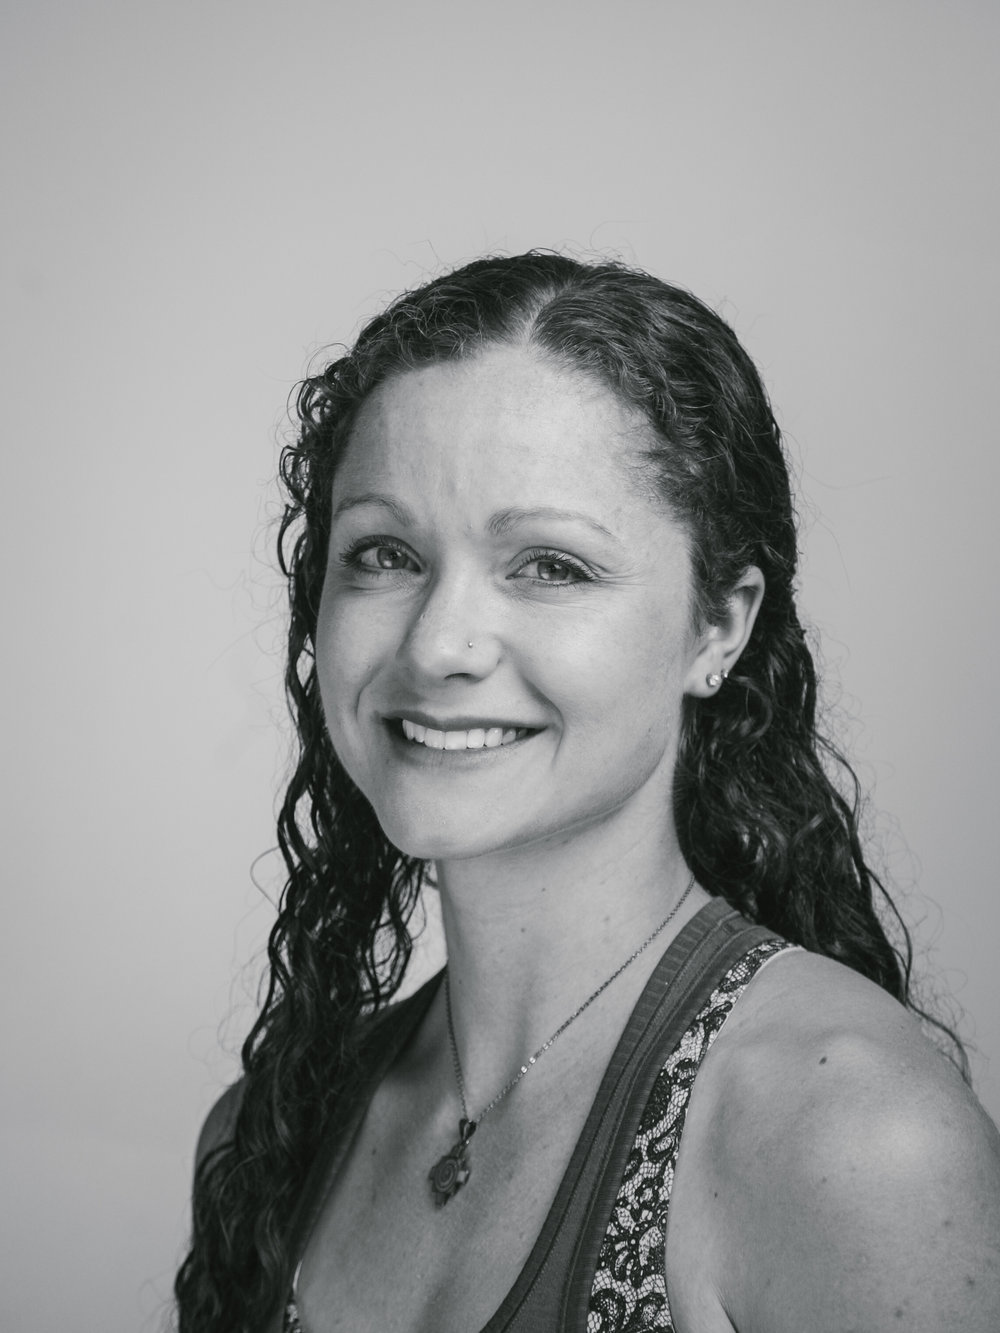 """Devon Caperton - I teach: TRX & Seek SweatWhether I'm out in the mountains, climbing with friends, or in the studio teaching, I just want to live playfully in connection and adventure. These activities bring me presence and embodiment and help me to feel most grounded and fully alive.Beats I move to:""""Welcome to the Party – Valentino Khan remix"""" Diplo, """"Global Concepts"""" Robert DeLong, """"Thought Contagion"""" Muse, """"Red Hot Lights"""" Moon Taxi, """"Thrift Shop"""" Macklemore & Ryan Lewis, """"It's Tricky"""" Run DMC, and """"I Like It"""" Cardi BWhat I live for:Movement, nature, music, and connection light me up. I thrive when these variables are in place, and I am grateful to be part of such an awesome studio community that supports each of these elements."""